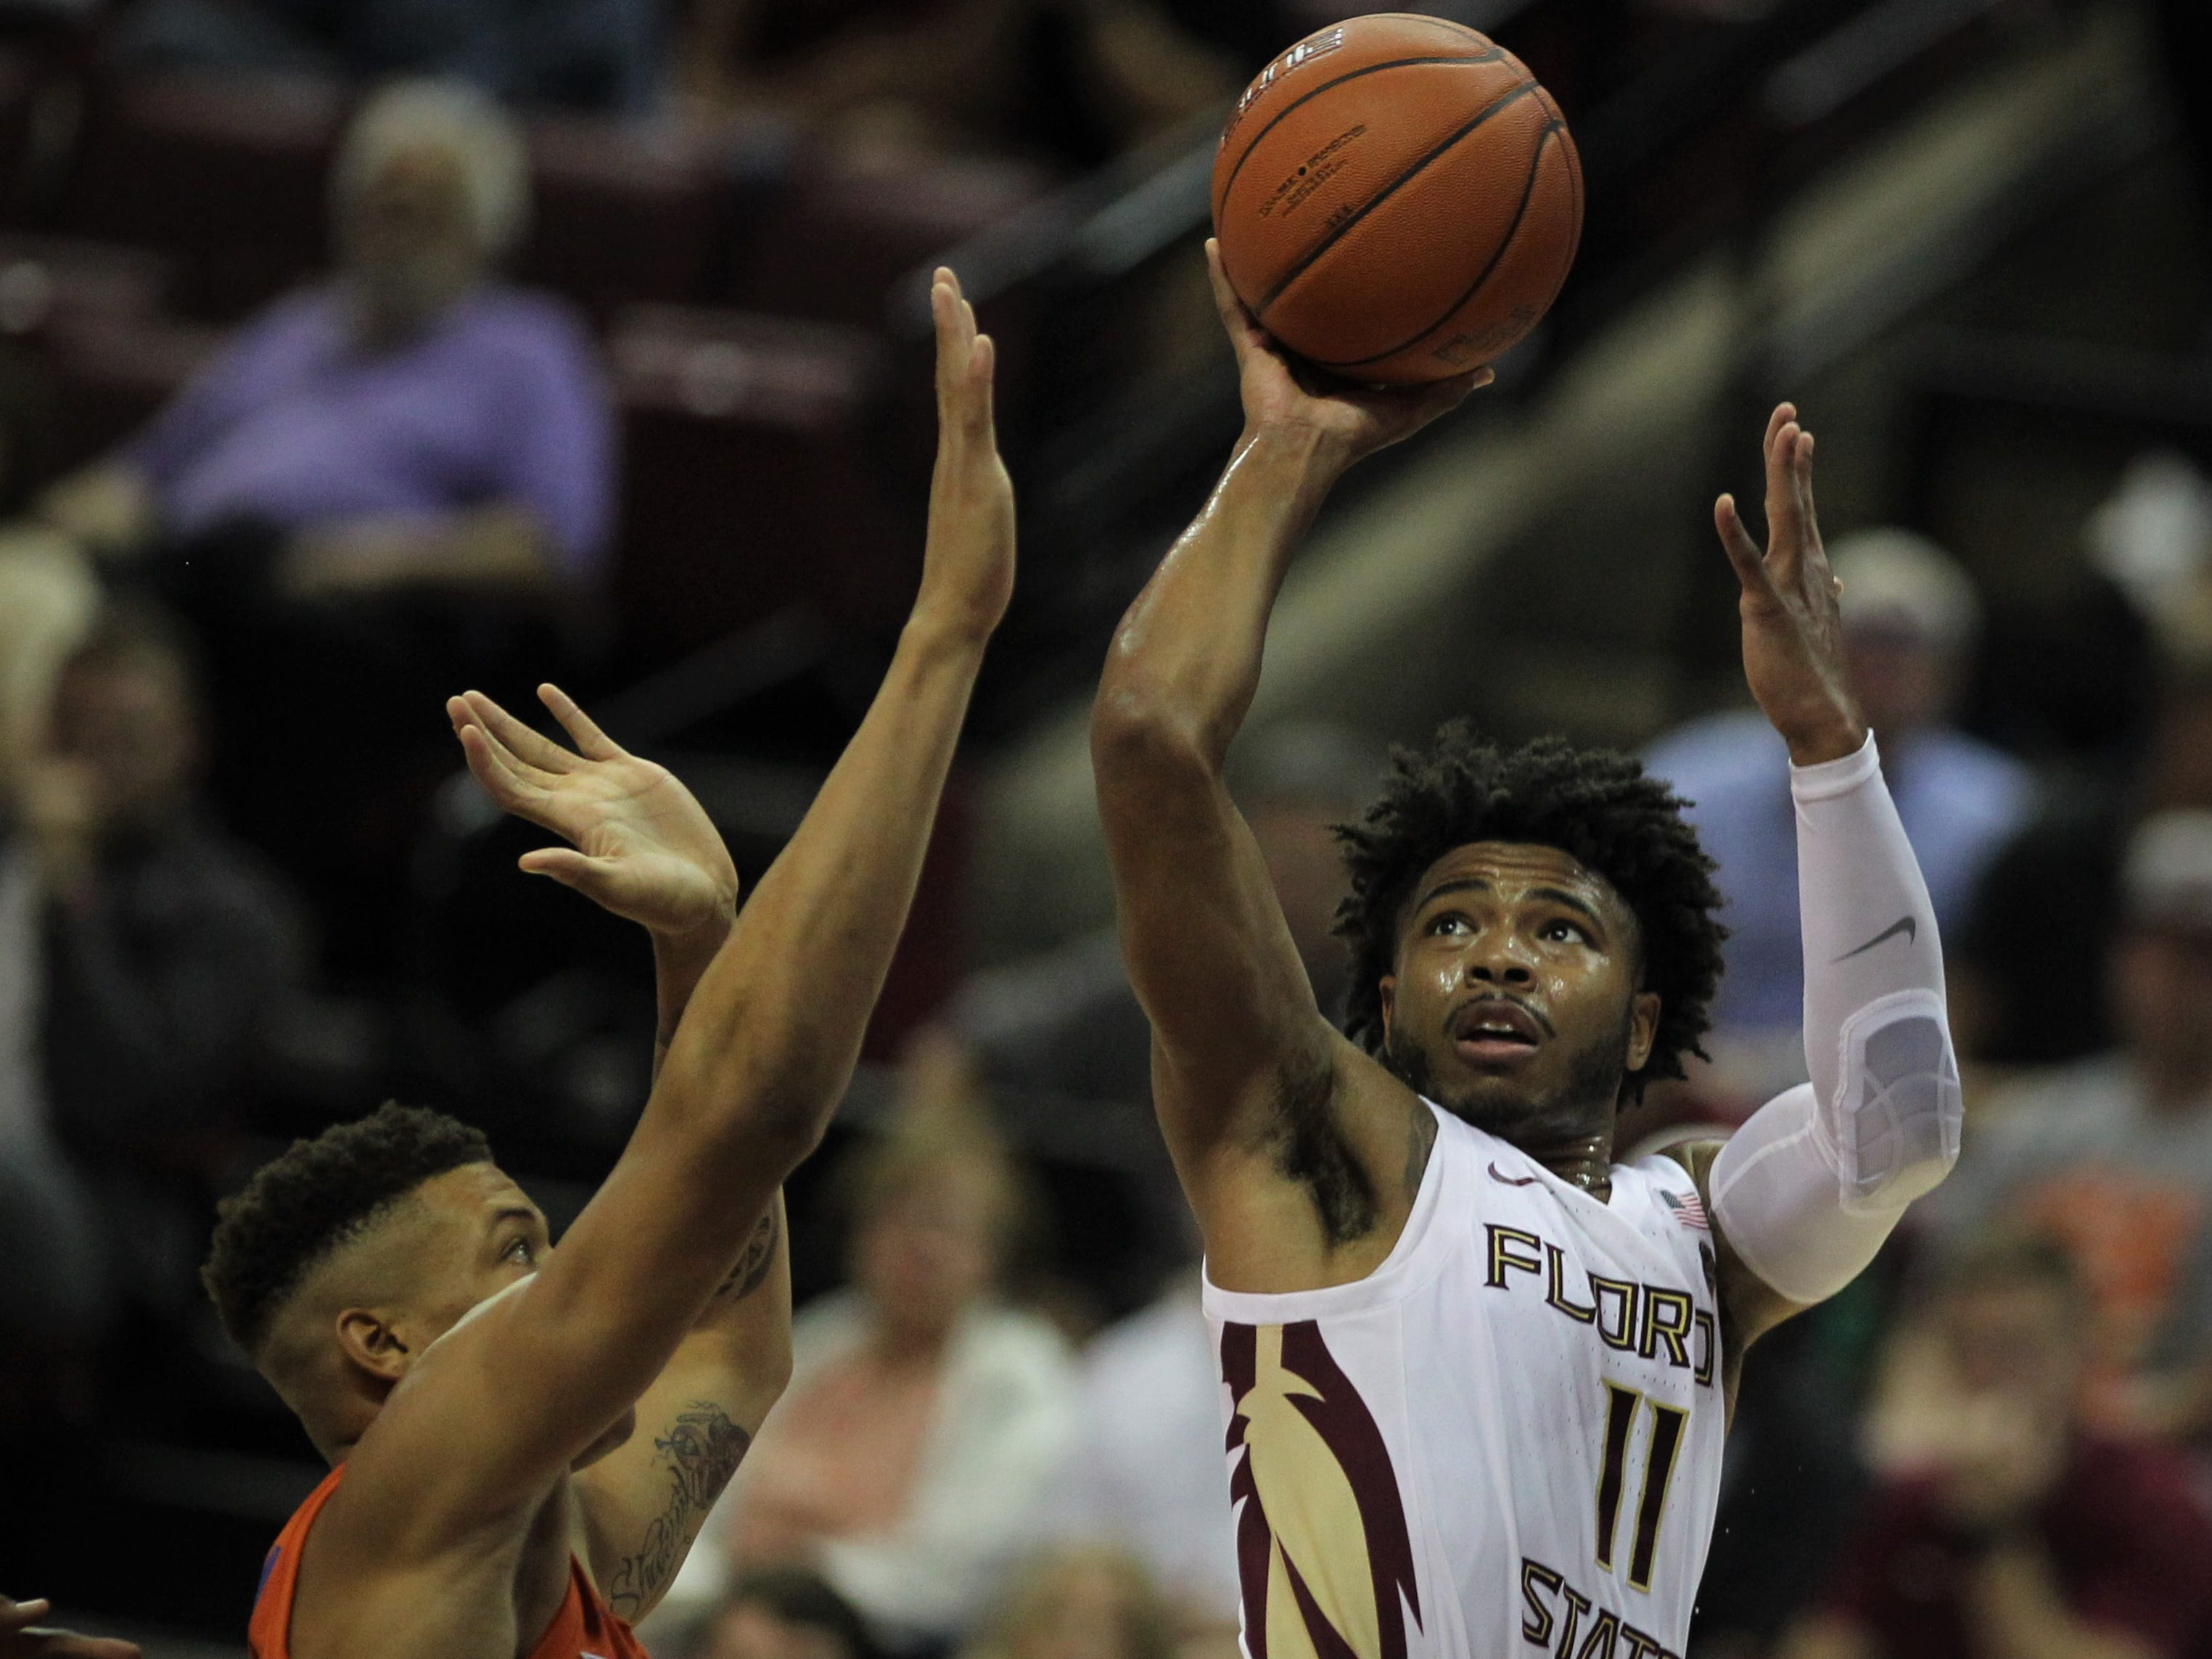 Florida State's David Nichols takes a shot over Florida's Keyontae Johnson during the Sunshine Showdown game Tuesday at the Tucker Civic Center.